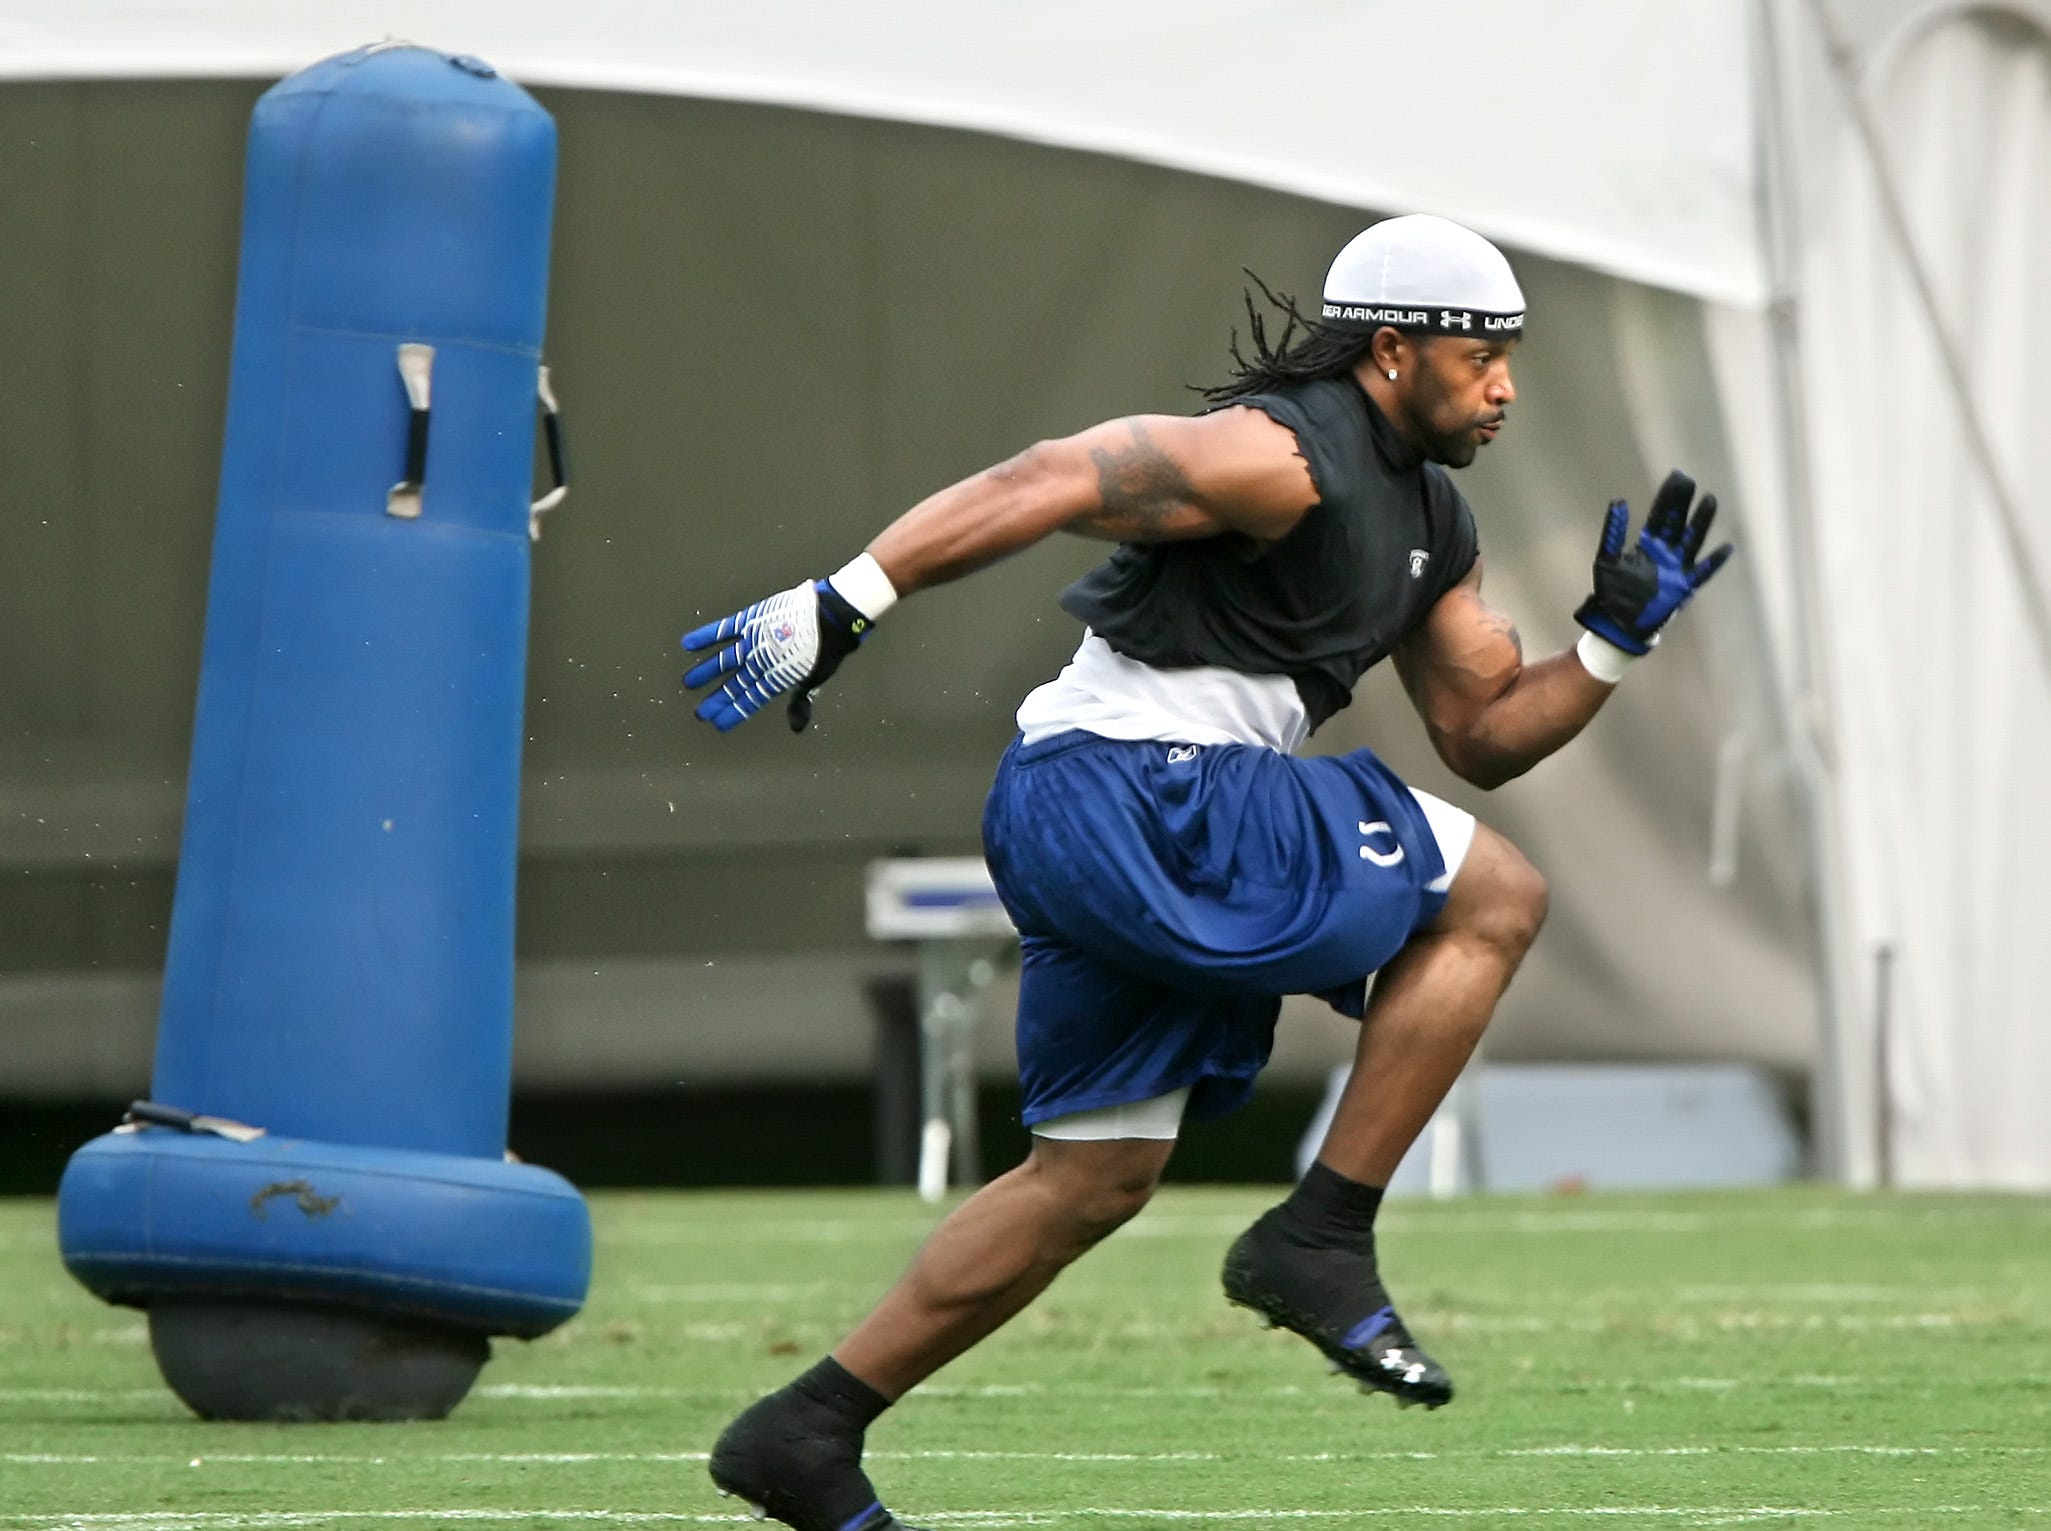 Colts defensive back Bob Sanders runs sprints as he conditions by himself without dressing during practice at Rose Hulman Institute of Technology on Wednesday, August 15, 2007.